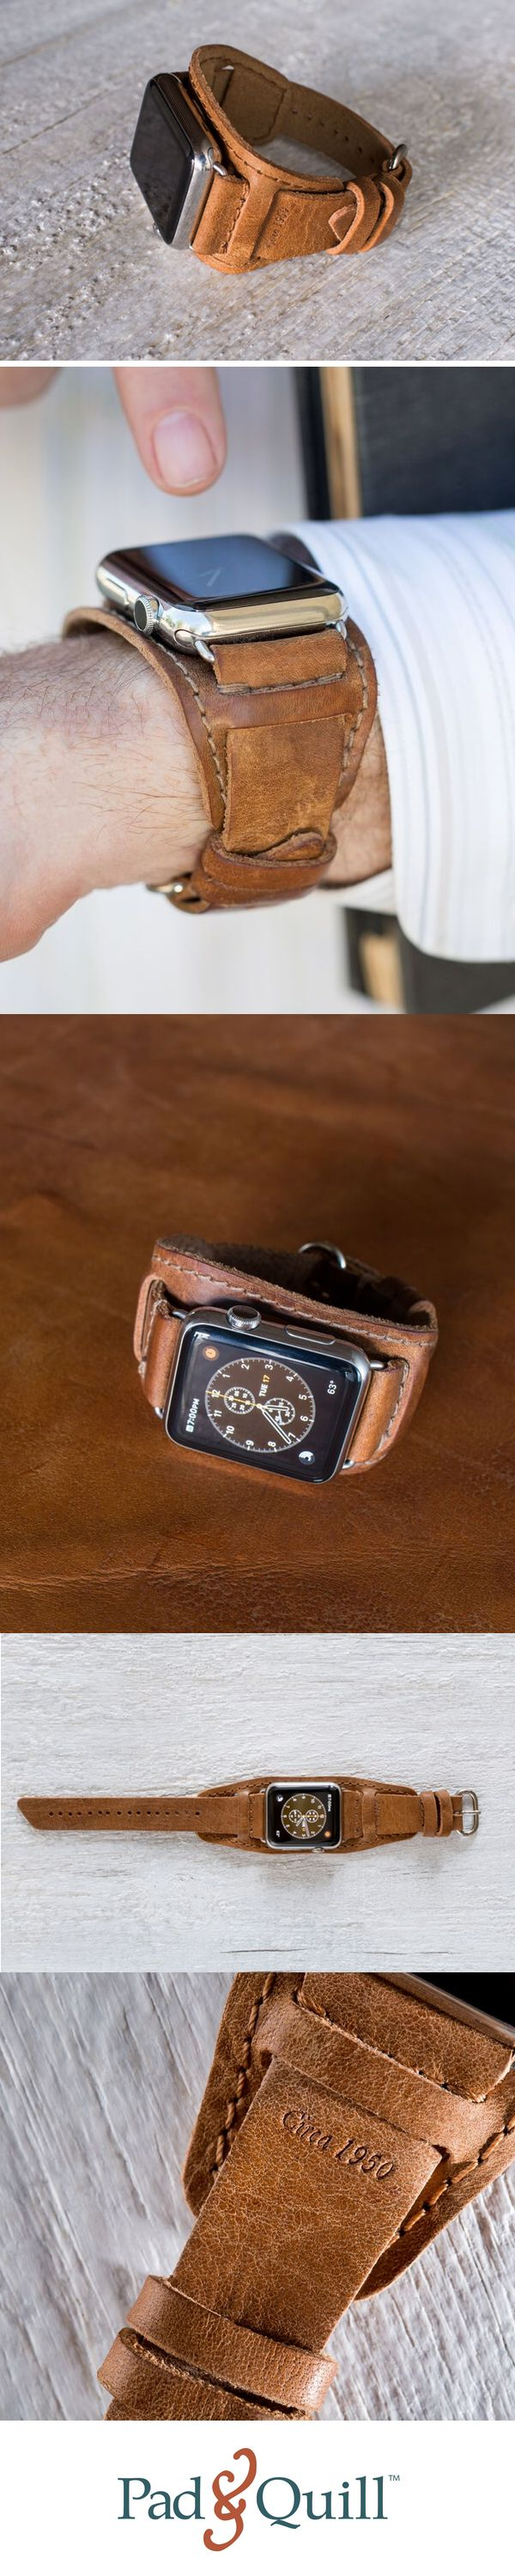 Limited Edition Vintage Leather Apple Watch Band: The 60 Year Lowry Cuff. Made for Apple Watch Series 1 & Series 2 from vintage European leather that is over 60 years old. Very limited edition.